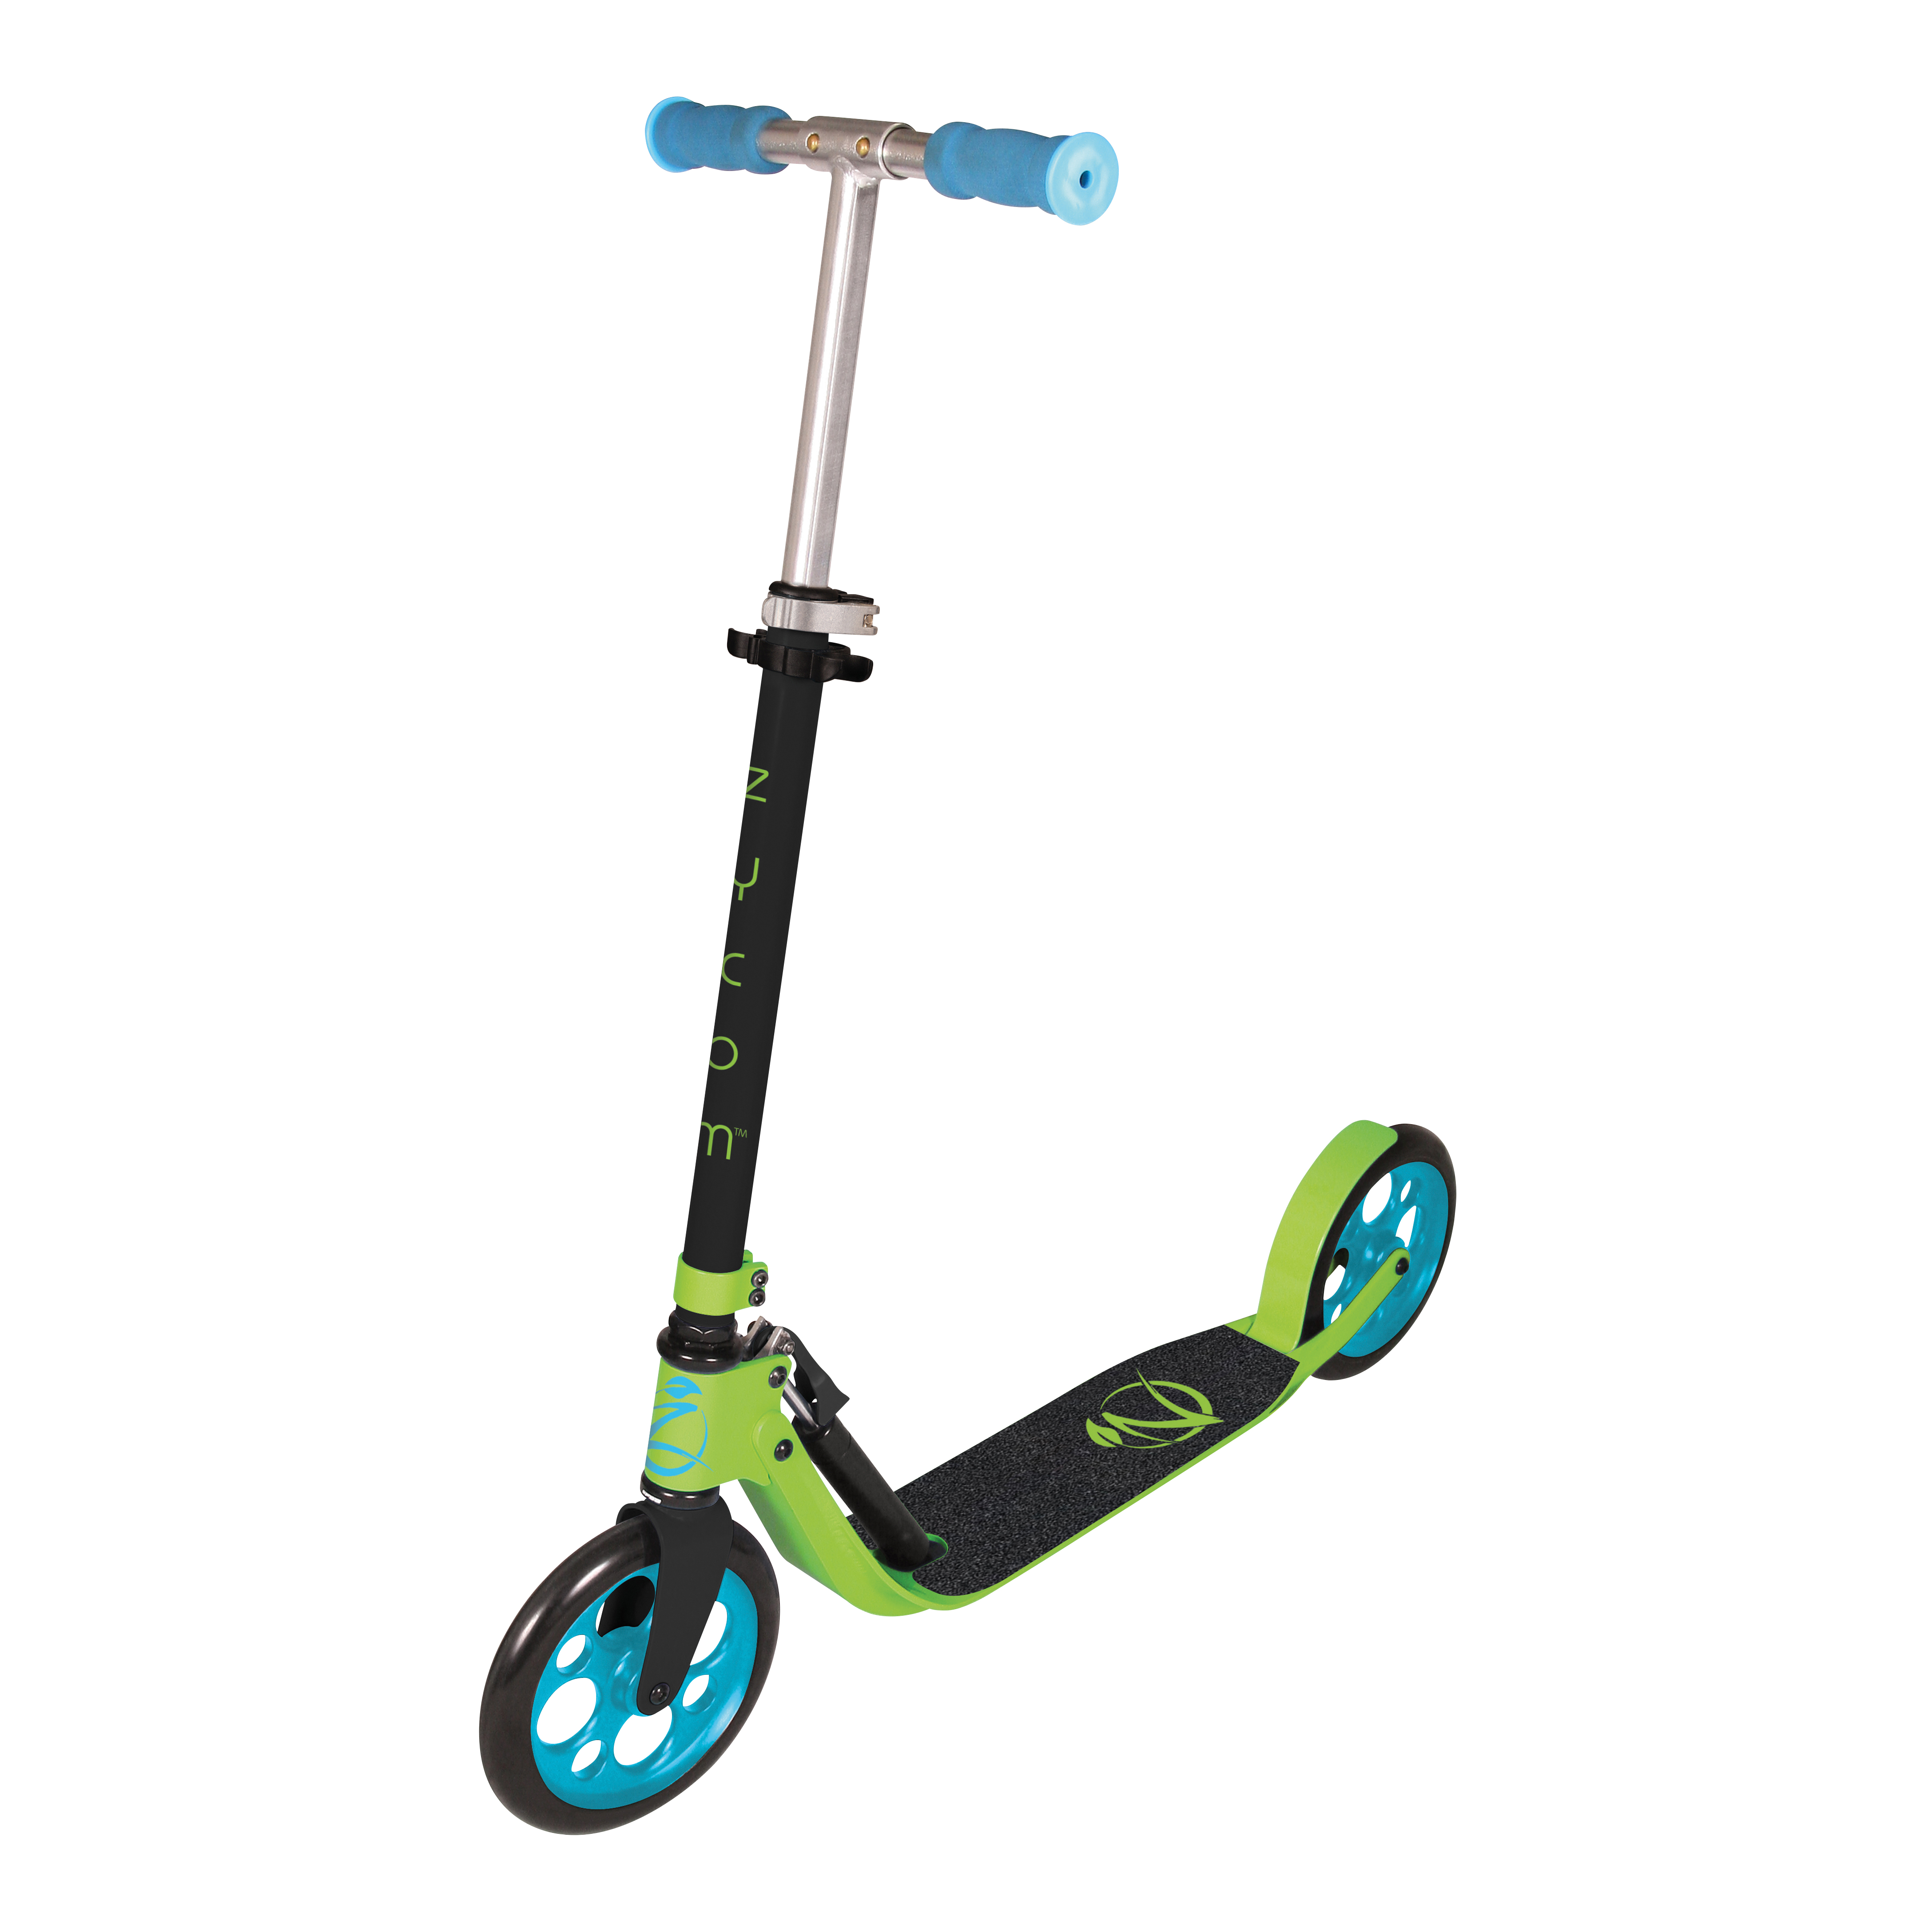 Sk8te4u Zycom Scooter Easy Ride 200